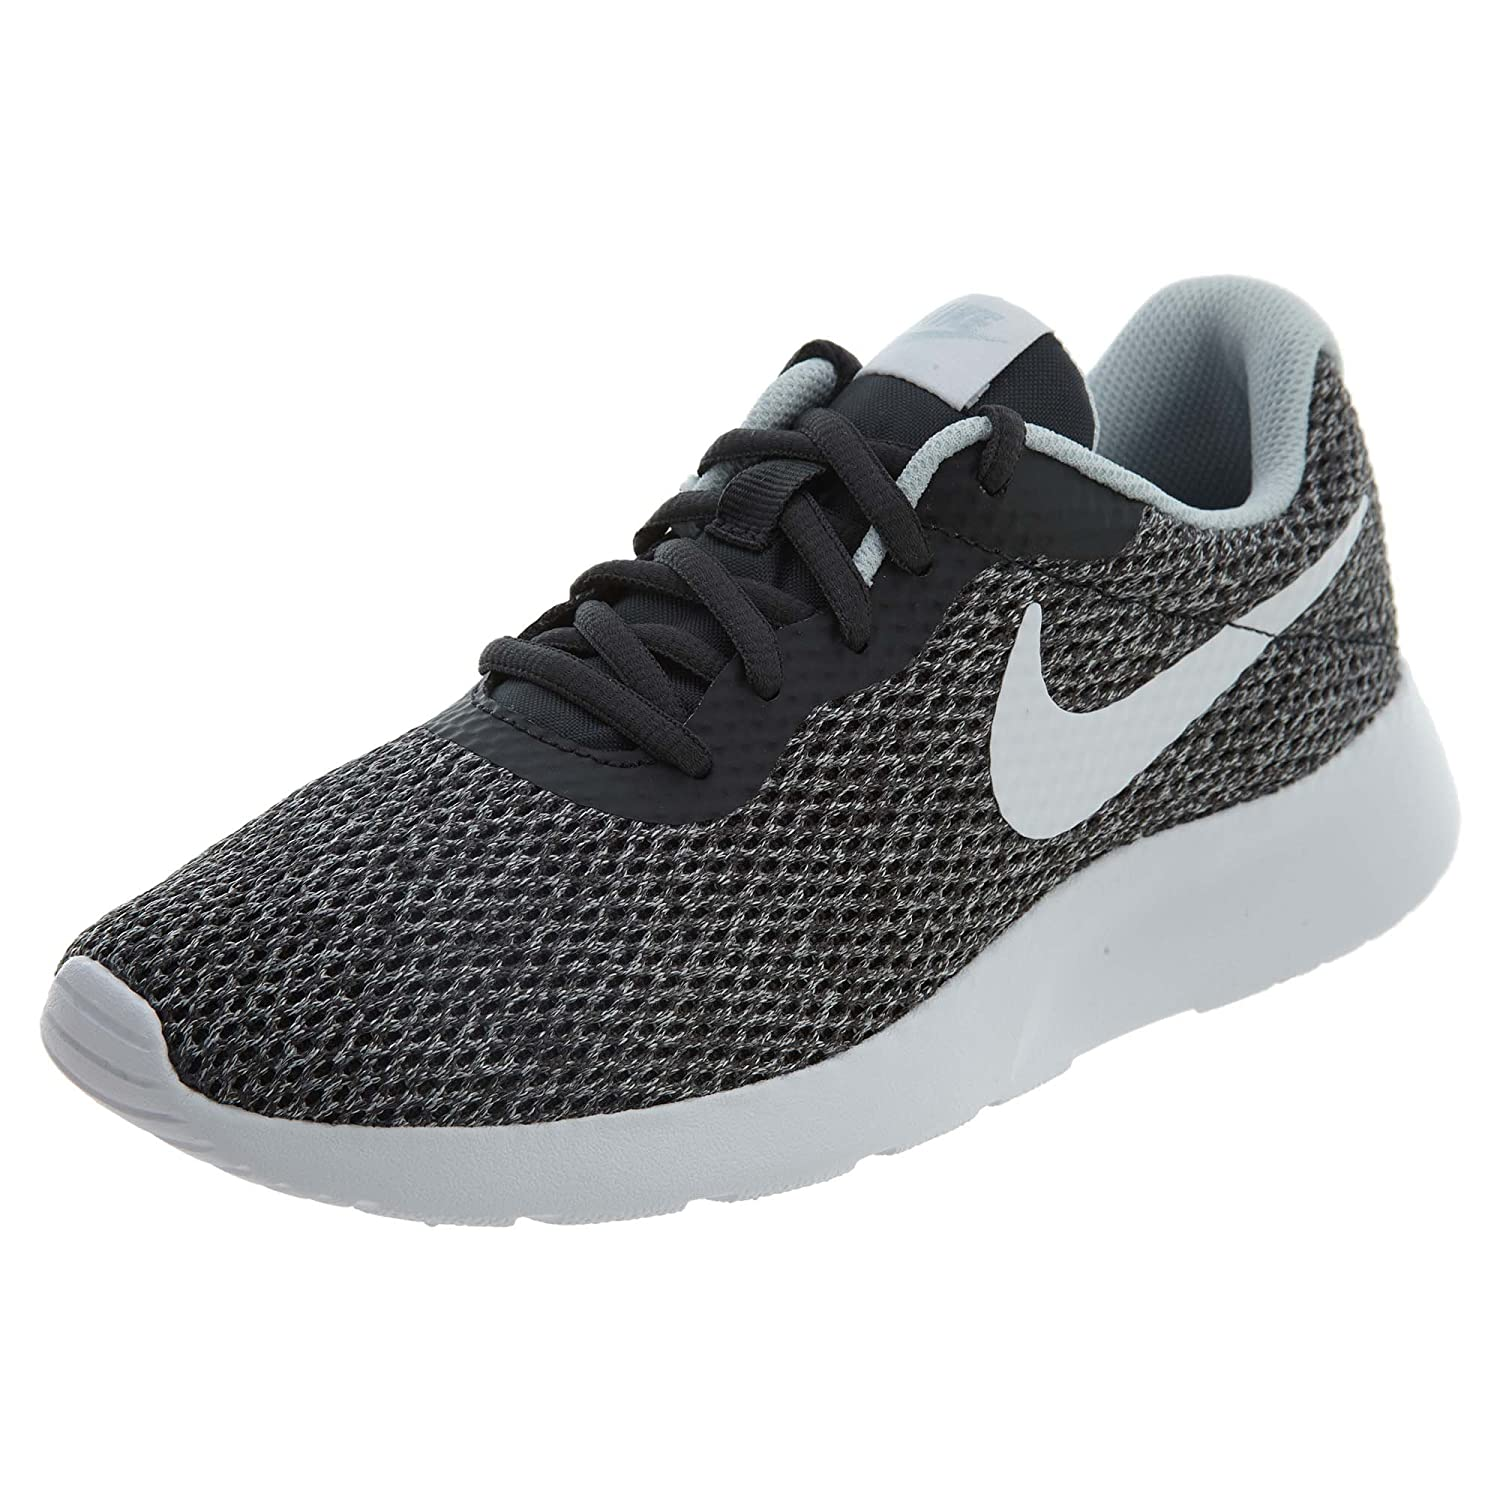 NIKE Women's Tanjun Running Shoes B0713XX734 8.5 B(M) US|Anthracite Wht Black Platinum